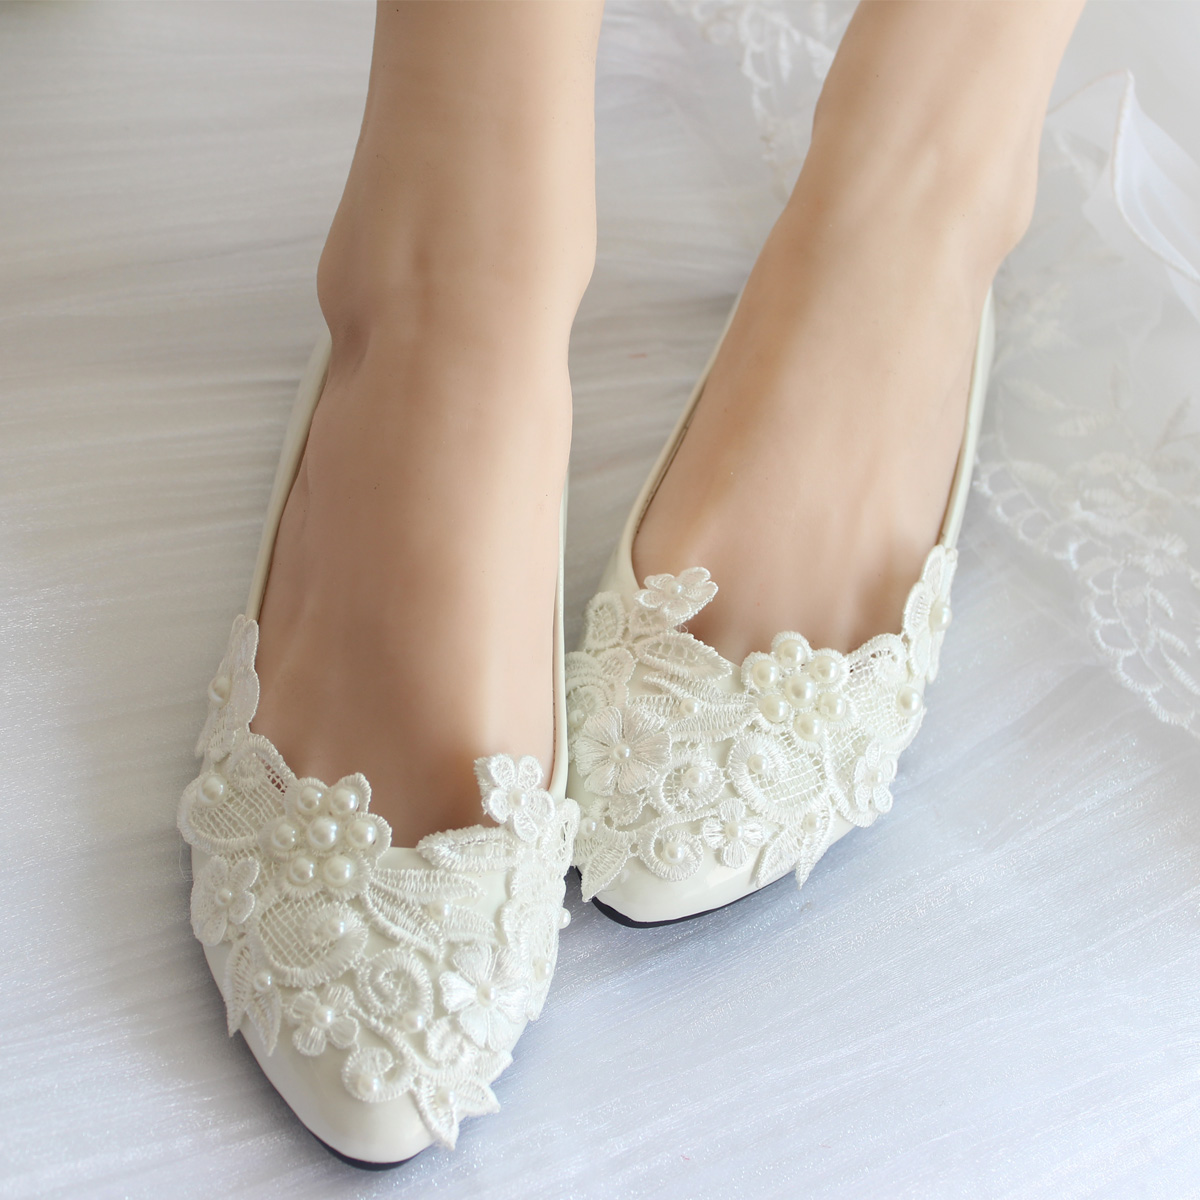 Pearl lace wedding shoes white handmade bridal bridesmaid shoes pearl lace wedding shoes white handmade bridal bridesmaid shoes women flats heel low single shoes ladies shoes large size 41 52 in womens flats from shoes junglespirit Image collections